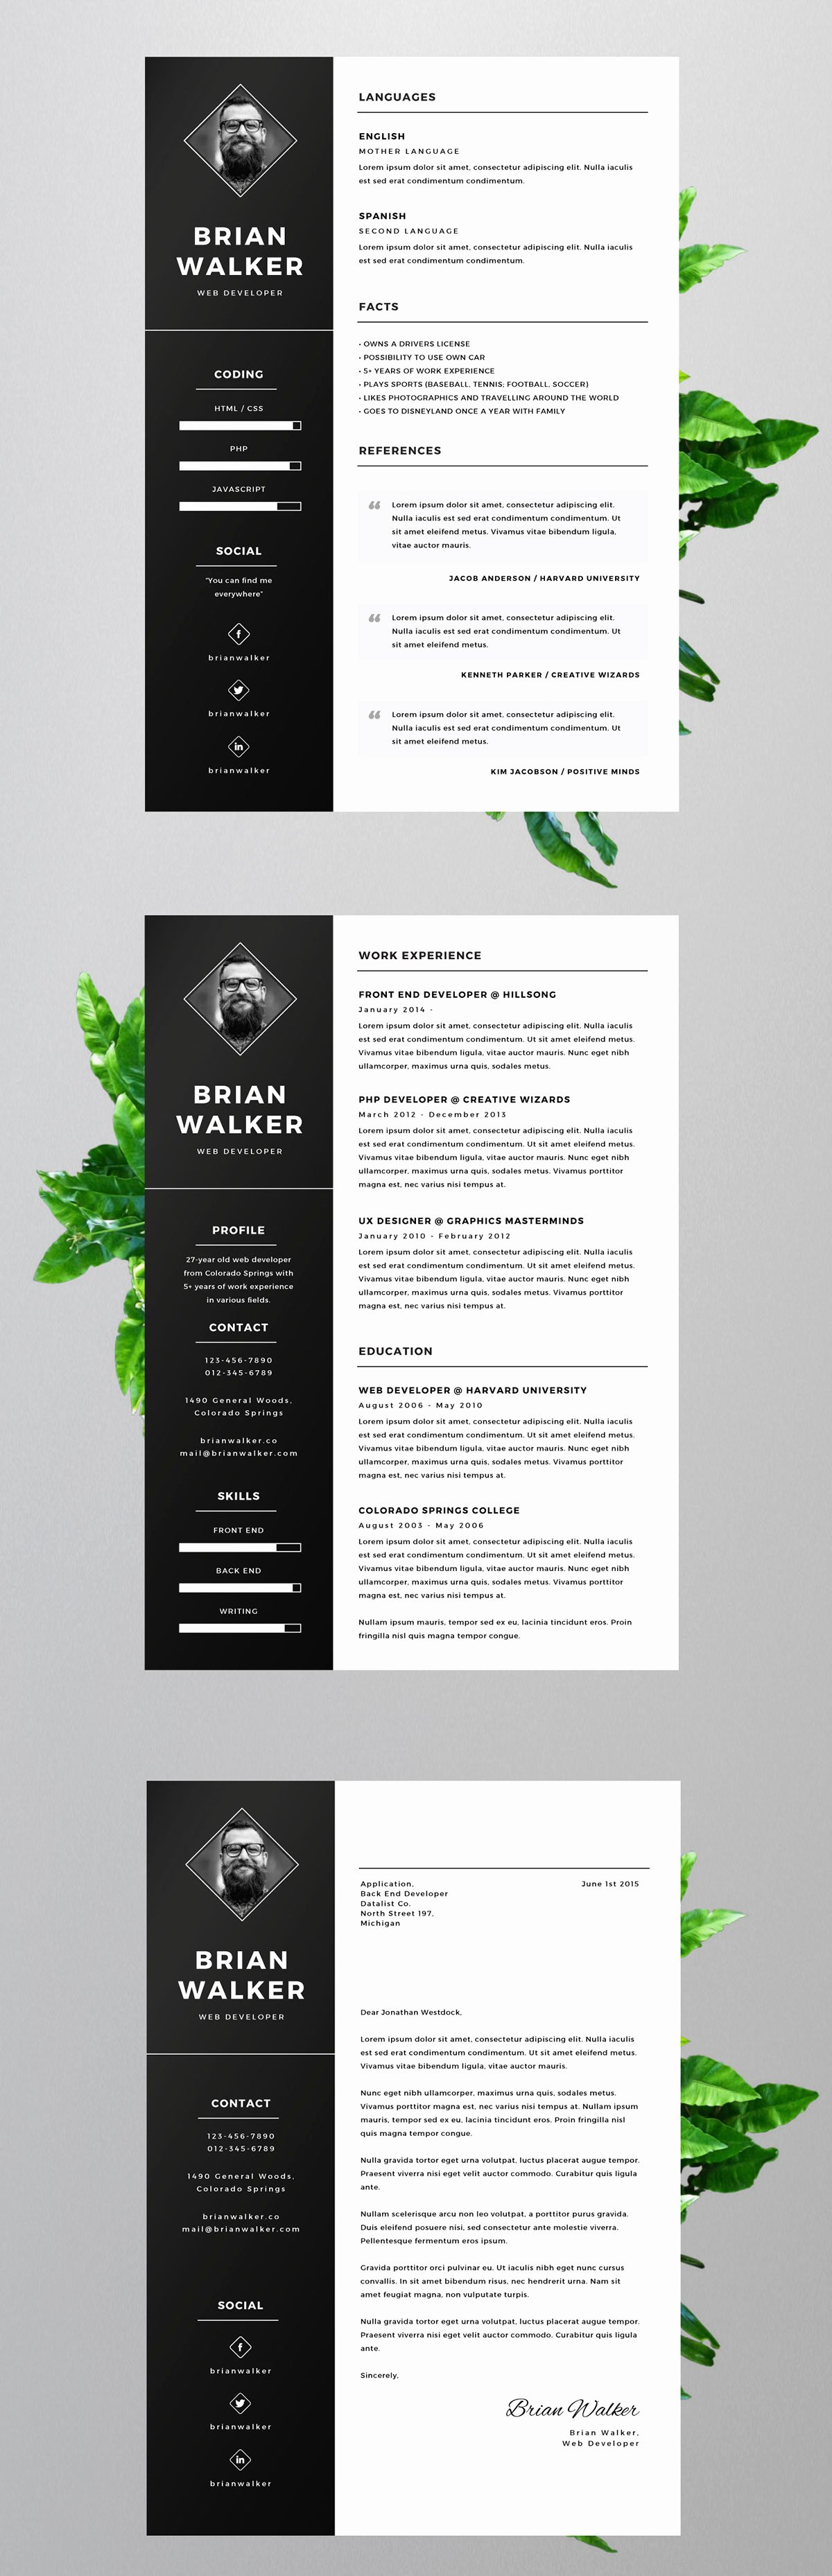 Free Creative Resume Templates Word Awesome Free Resume Template for Word Shop & Illustrator On